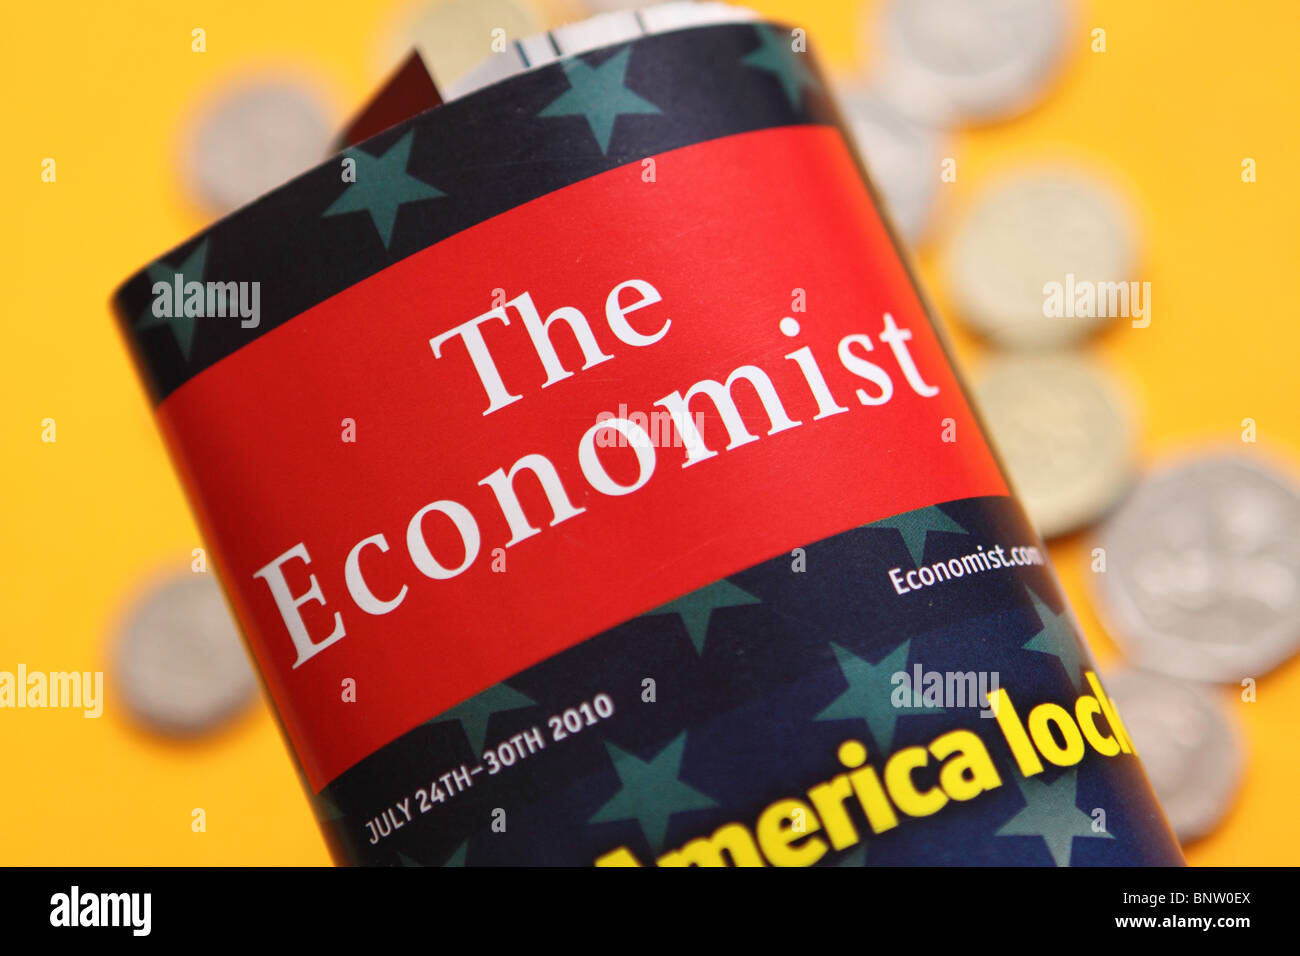 The Economist magazine publication cover with money coins - Stock Image